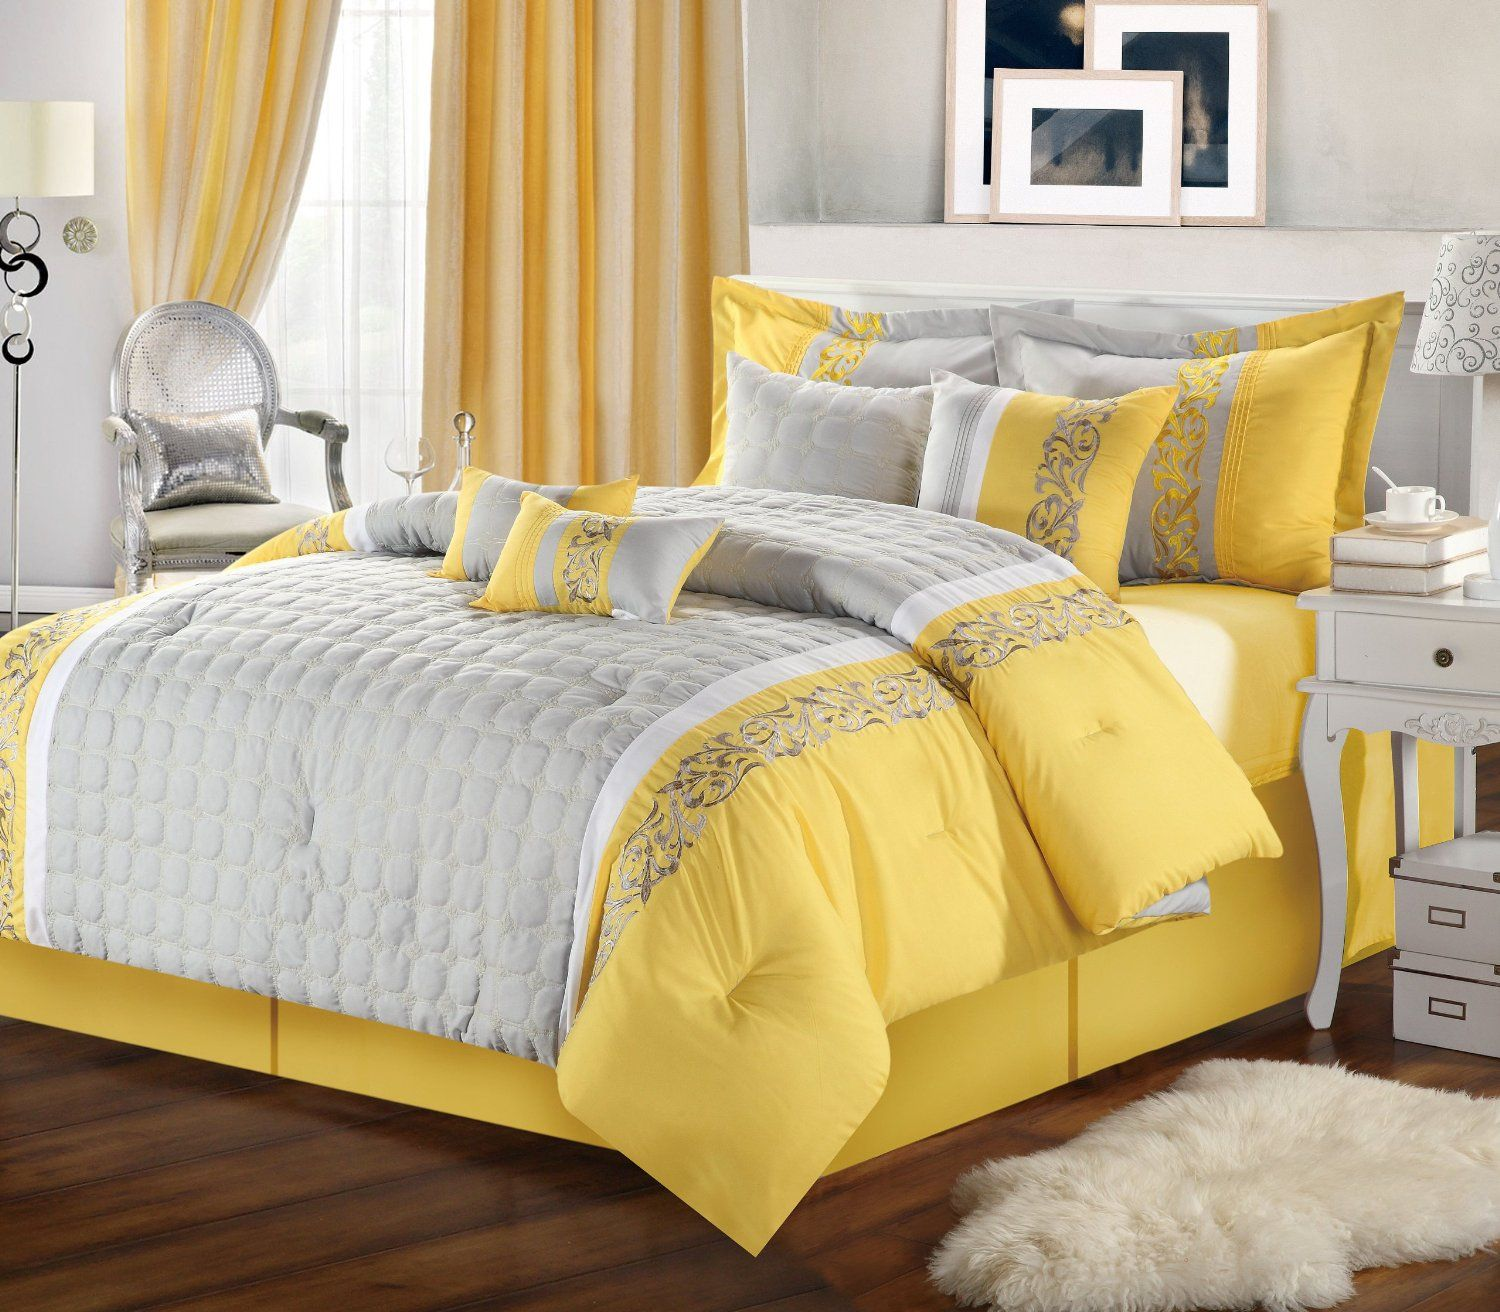 Comforter Sets Grey And Yellow Bedding Sets Grey And Yellow - Blue and yellow comforter sets king